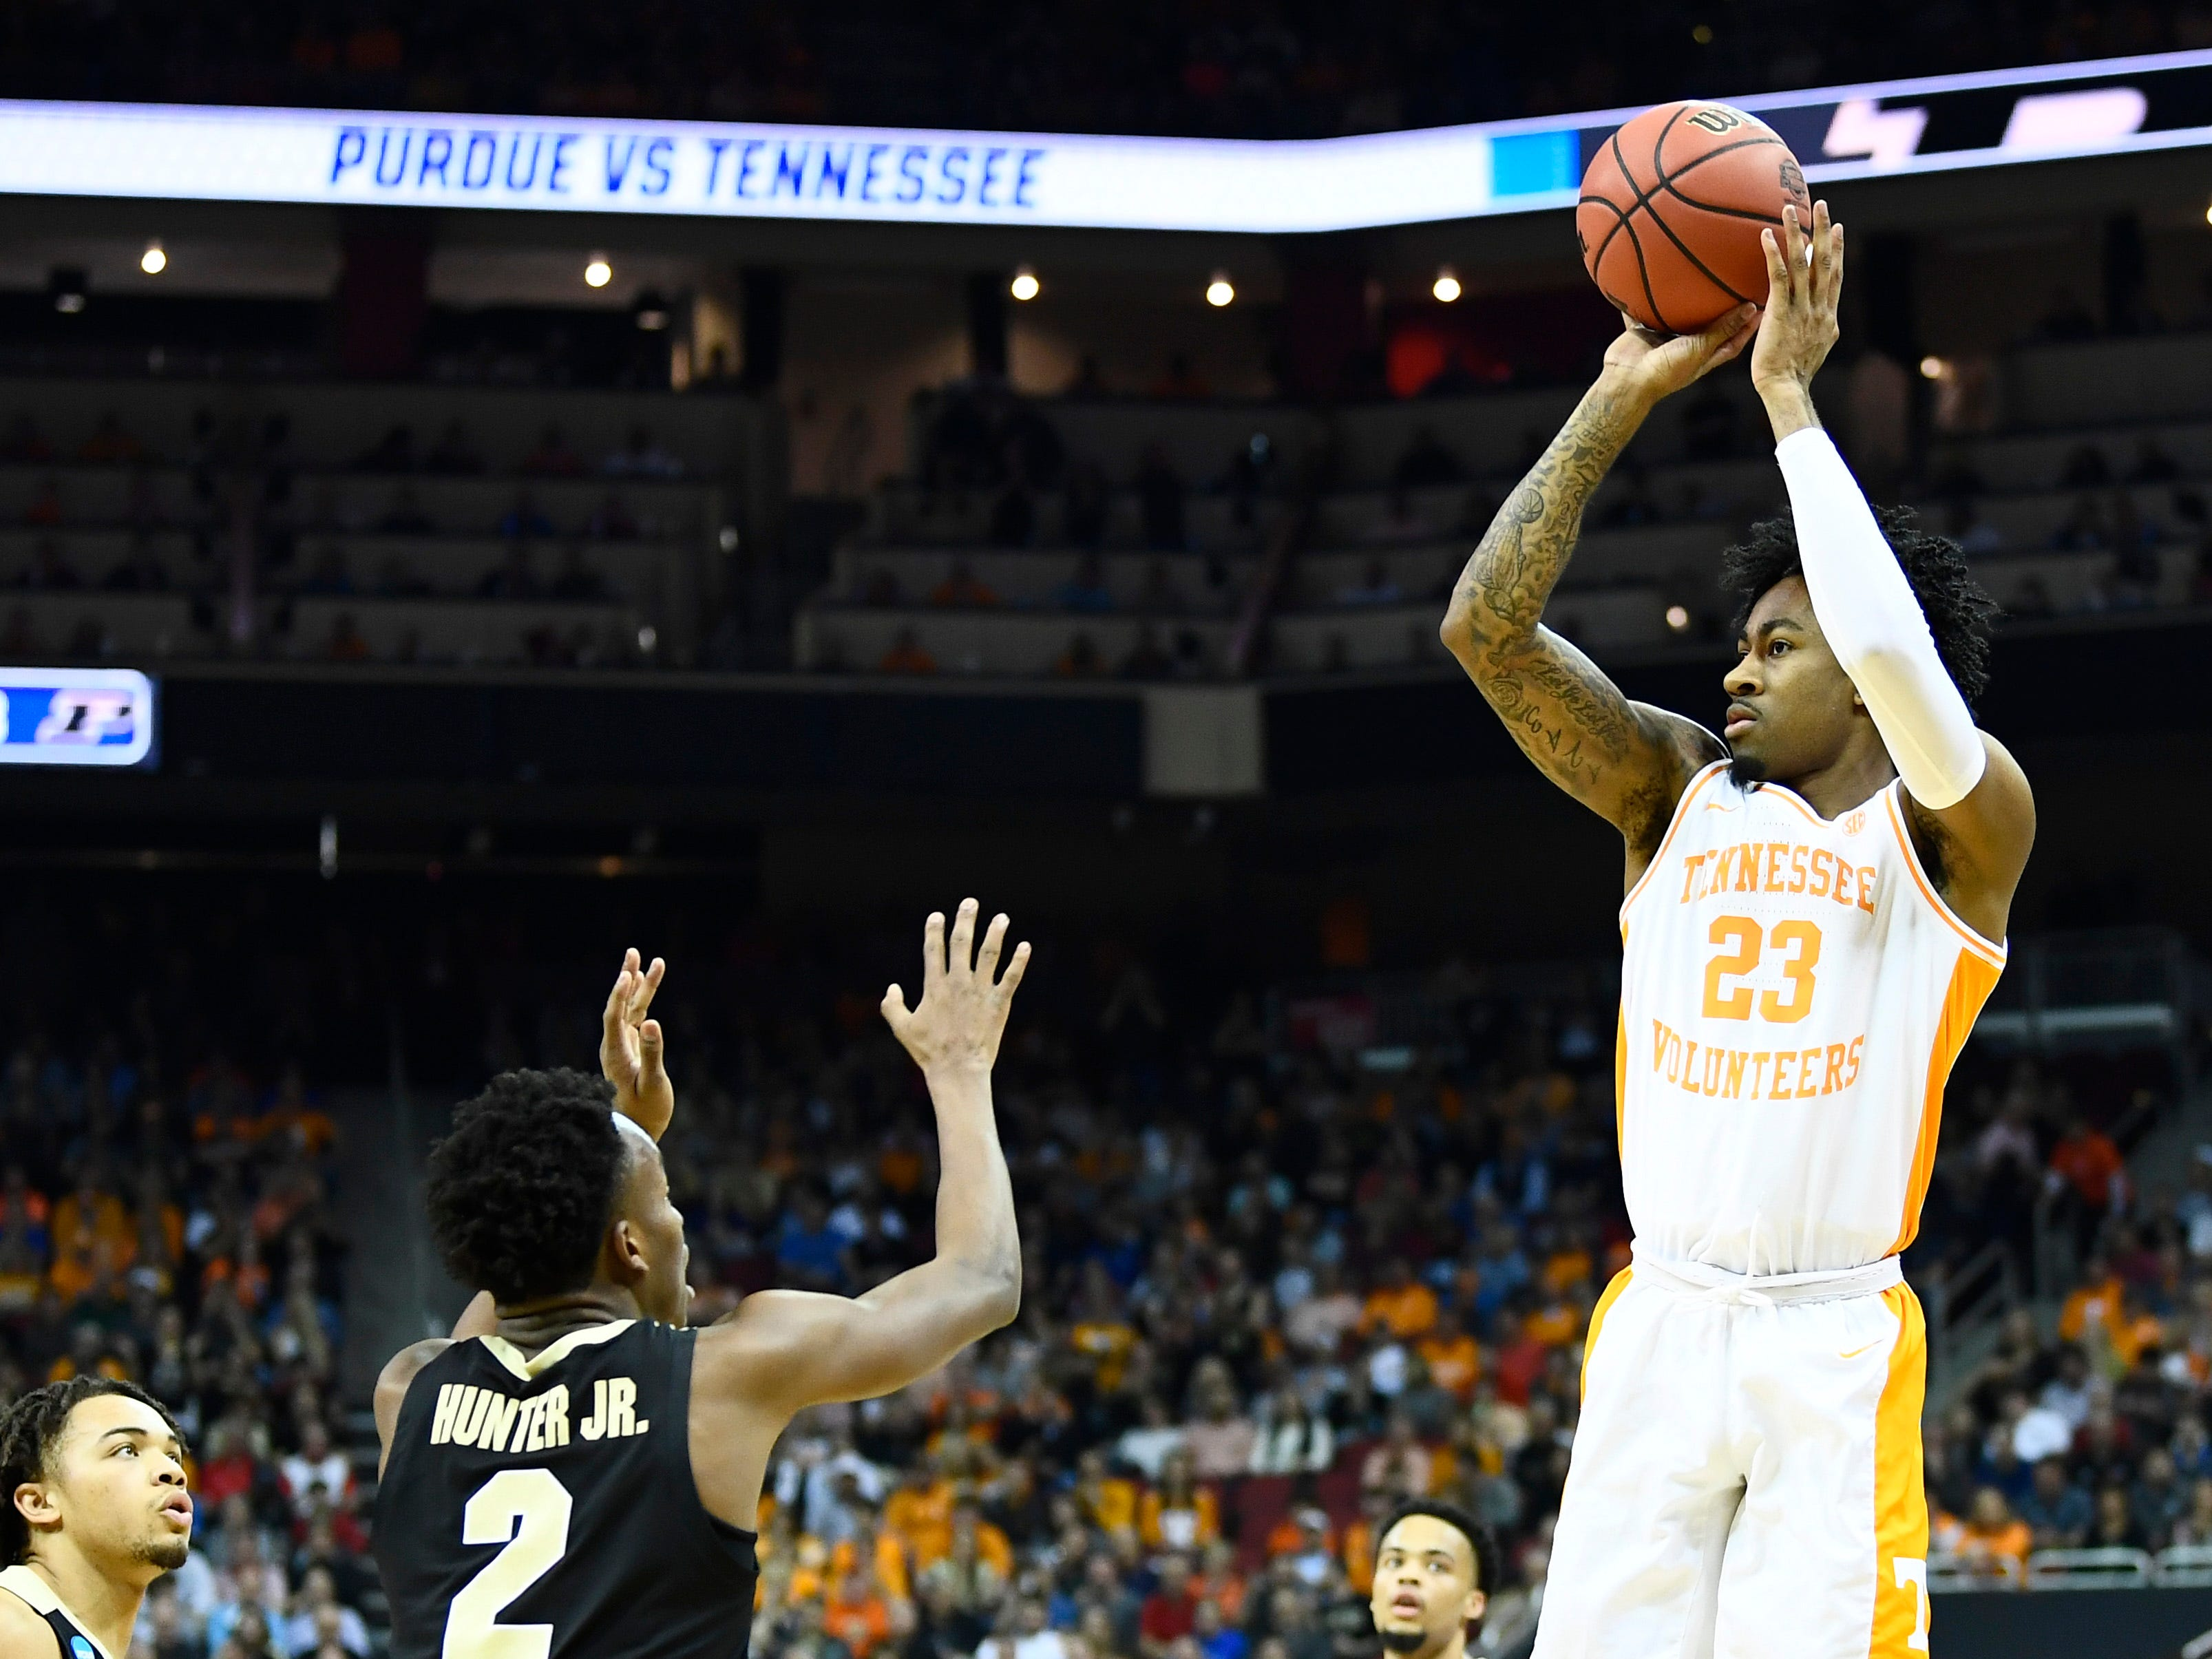 Tennessee guard Jordan Bowden (23) shoots a three-pointer over Purdue guard Eric Hunter Jr. (2) in their Sweet 16 game in the NCAA Tournament Thursday, March 28, 2019, at the KFC Yum! Center in Louisville, Ky.